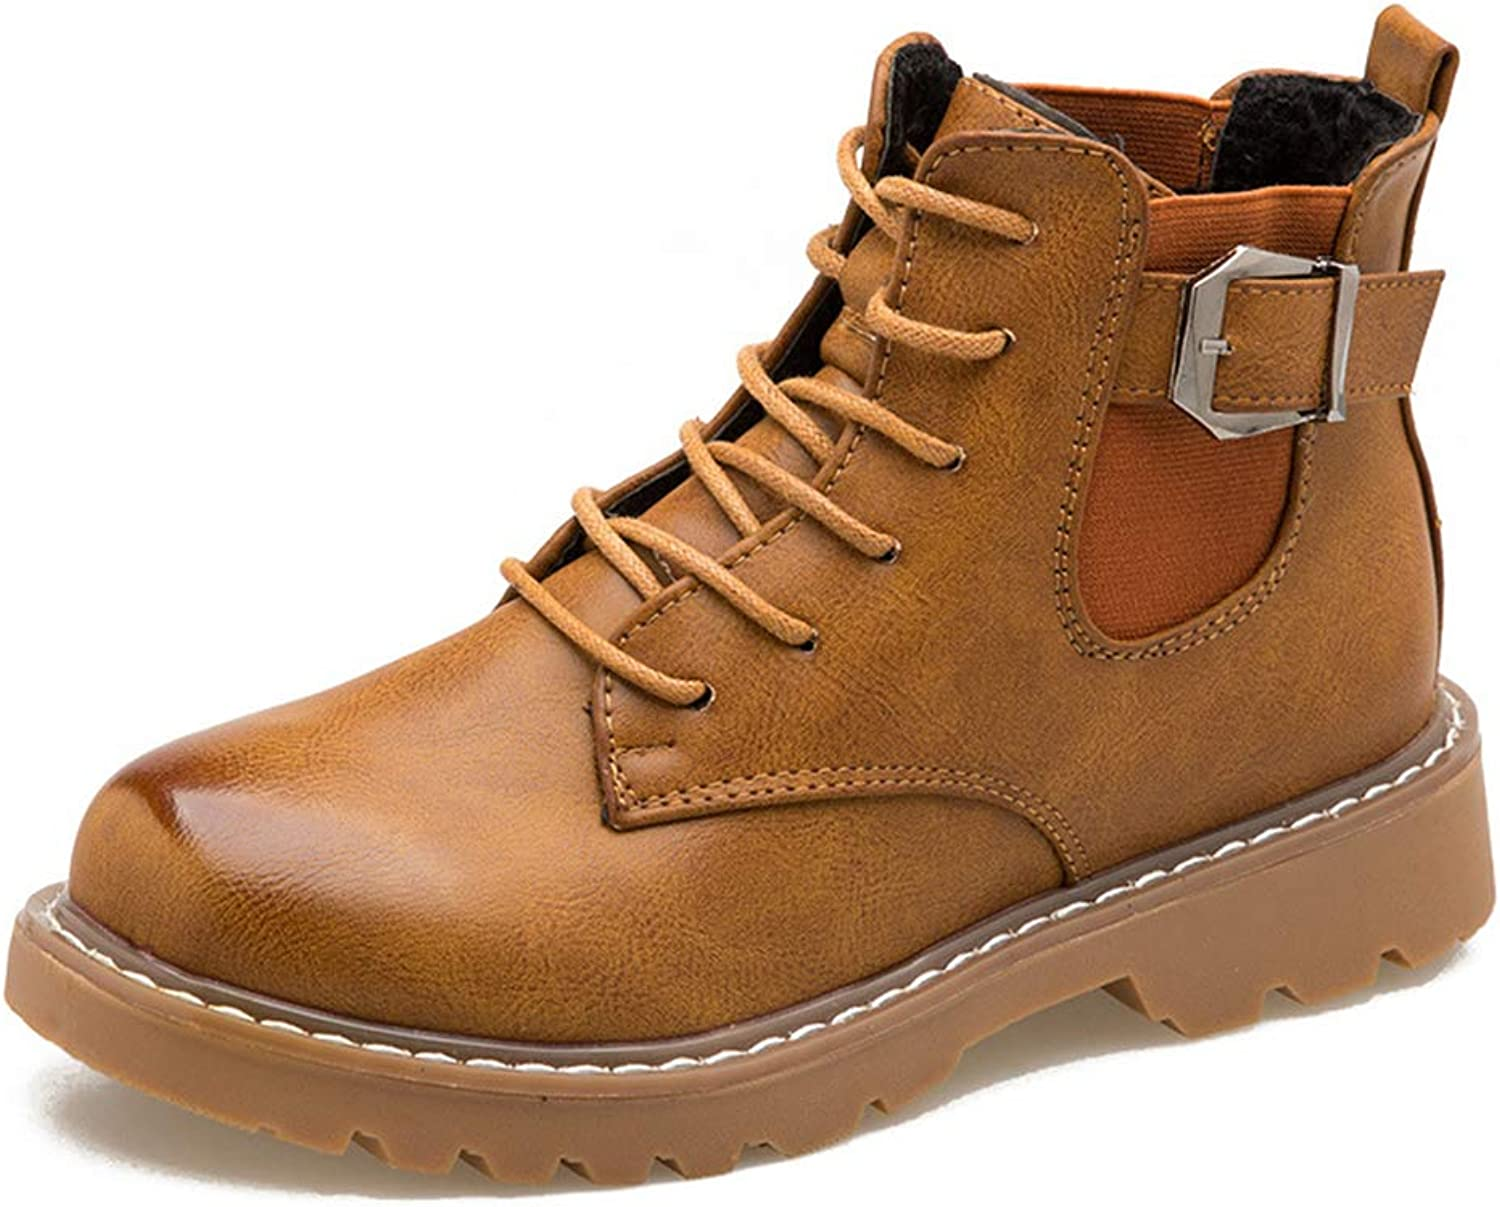 A-LING Women's Hiking and Backpaking Lace-Up Boot